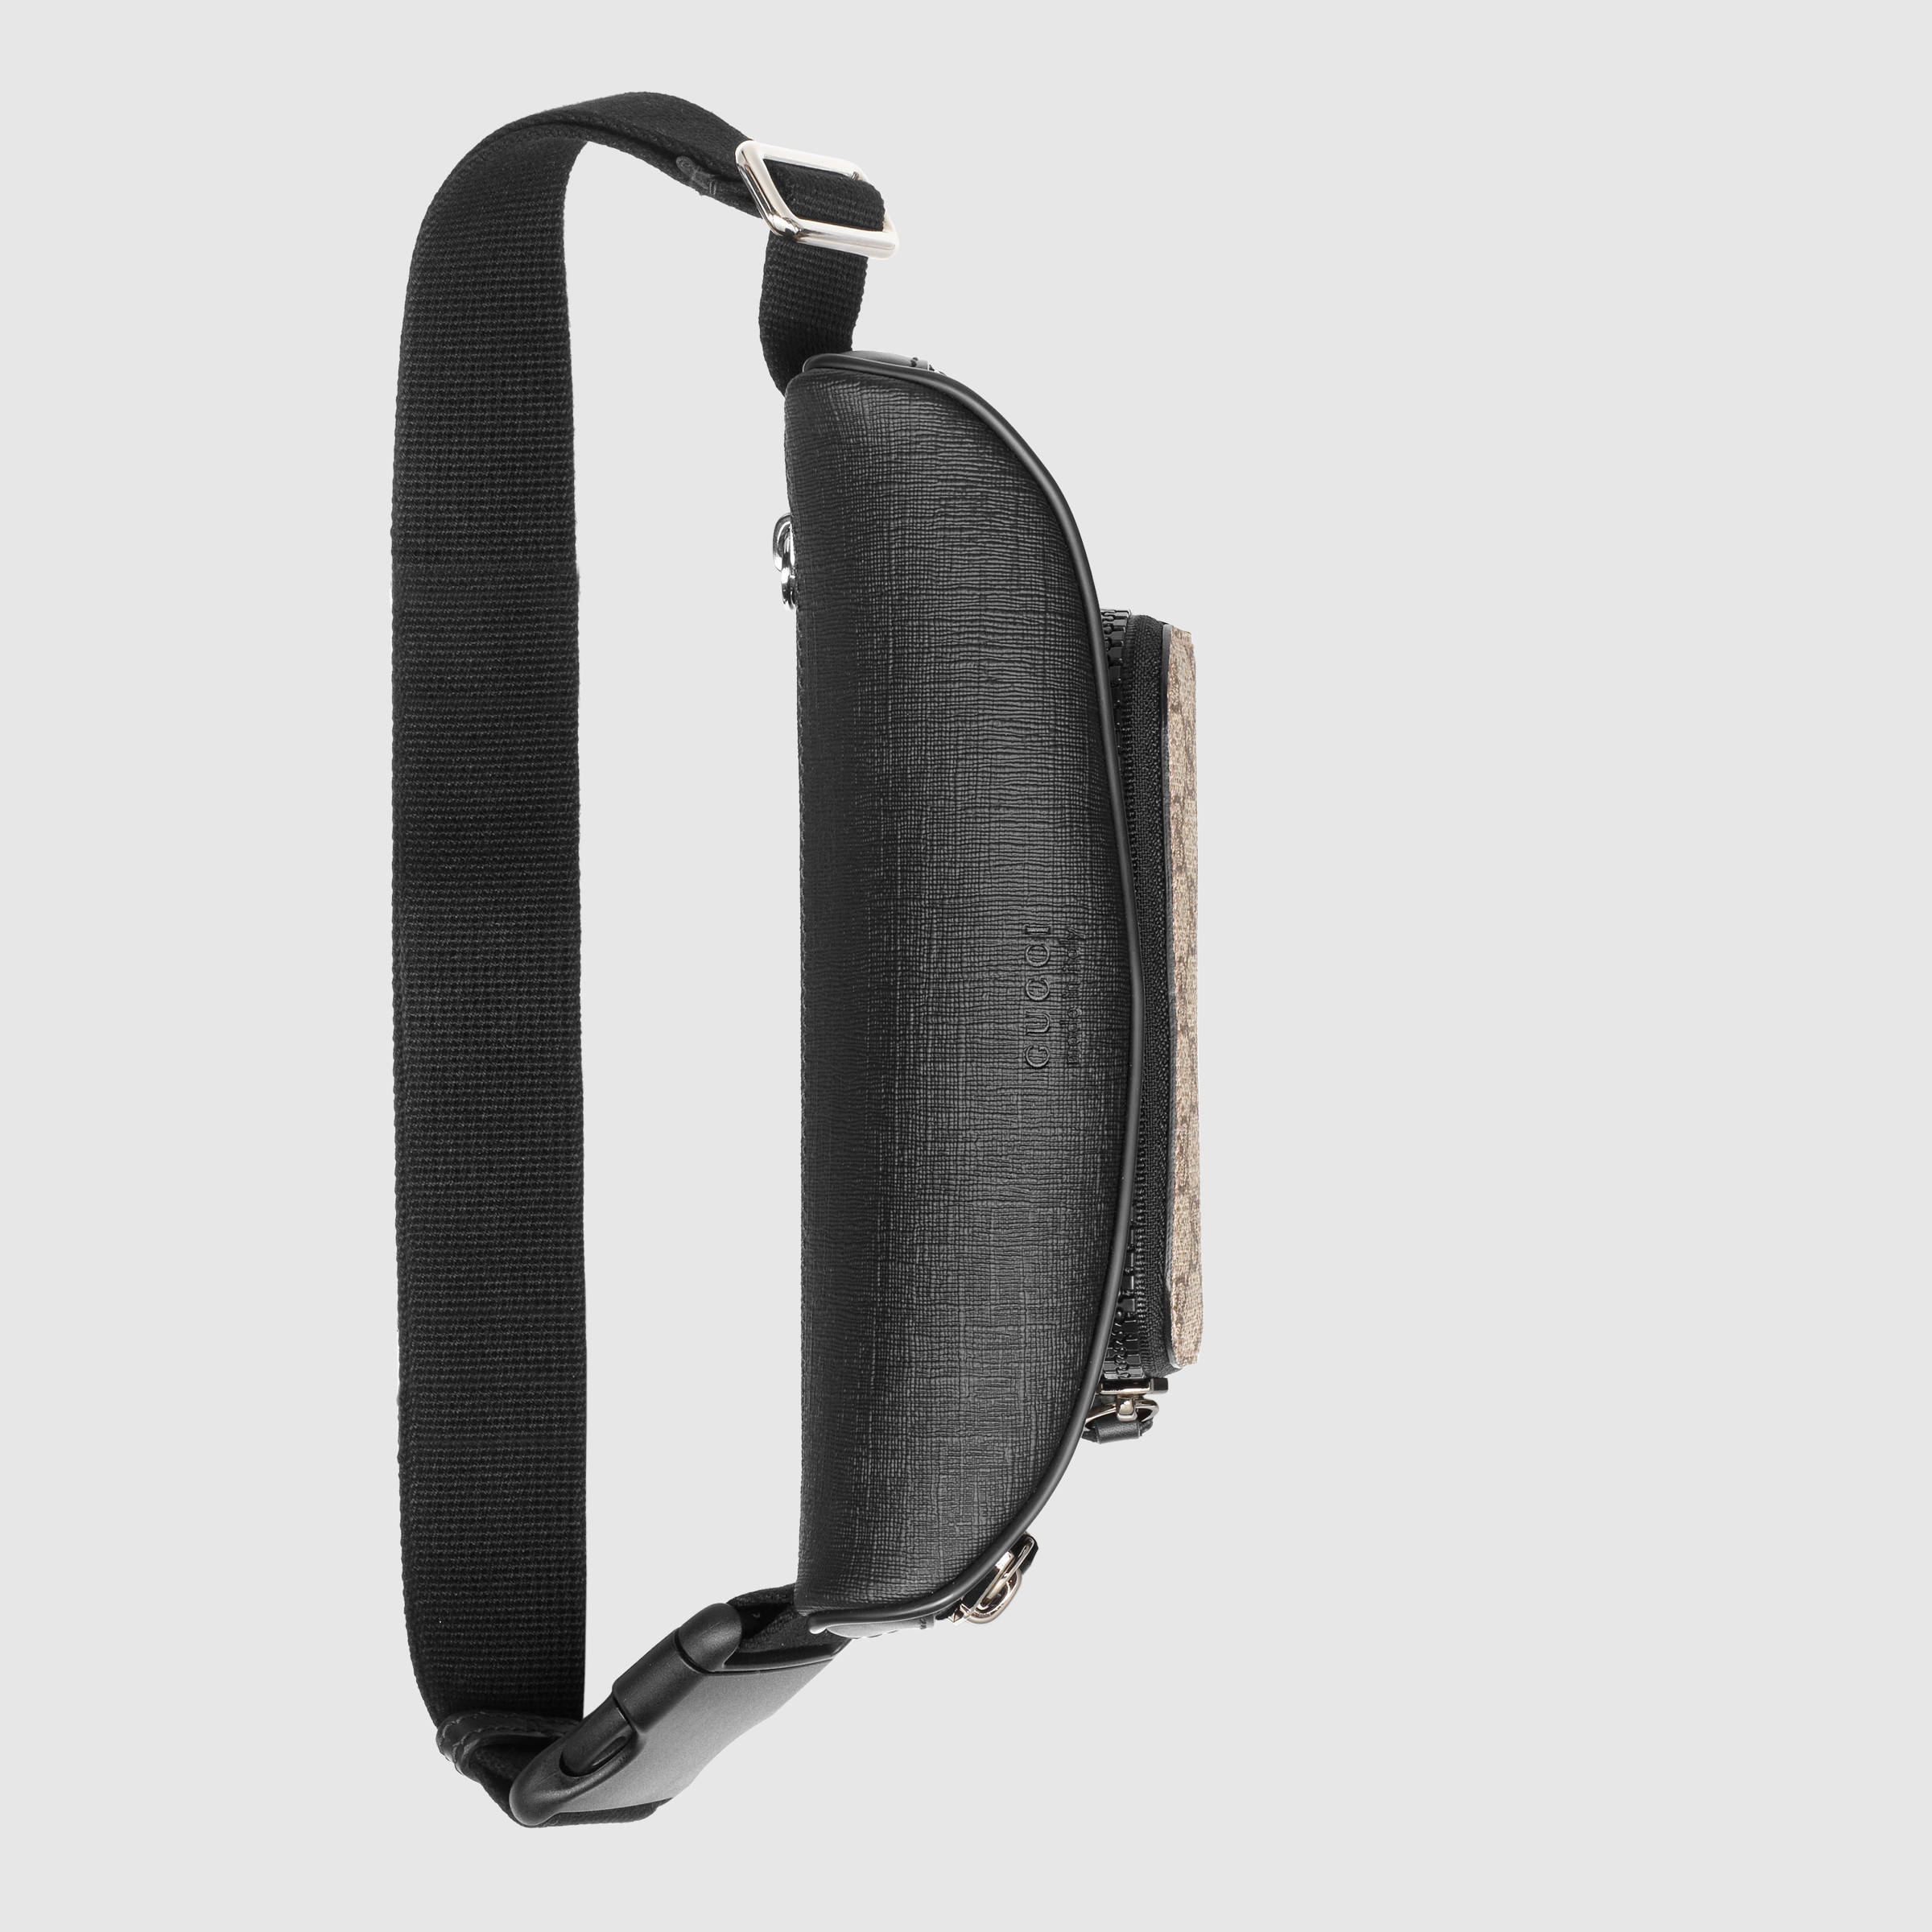 【グッチ】Gg Supreme Belt Bag ポーチ